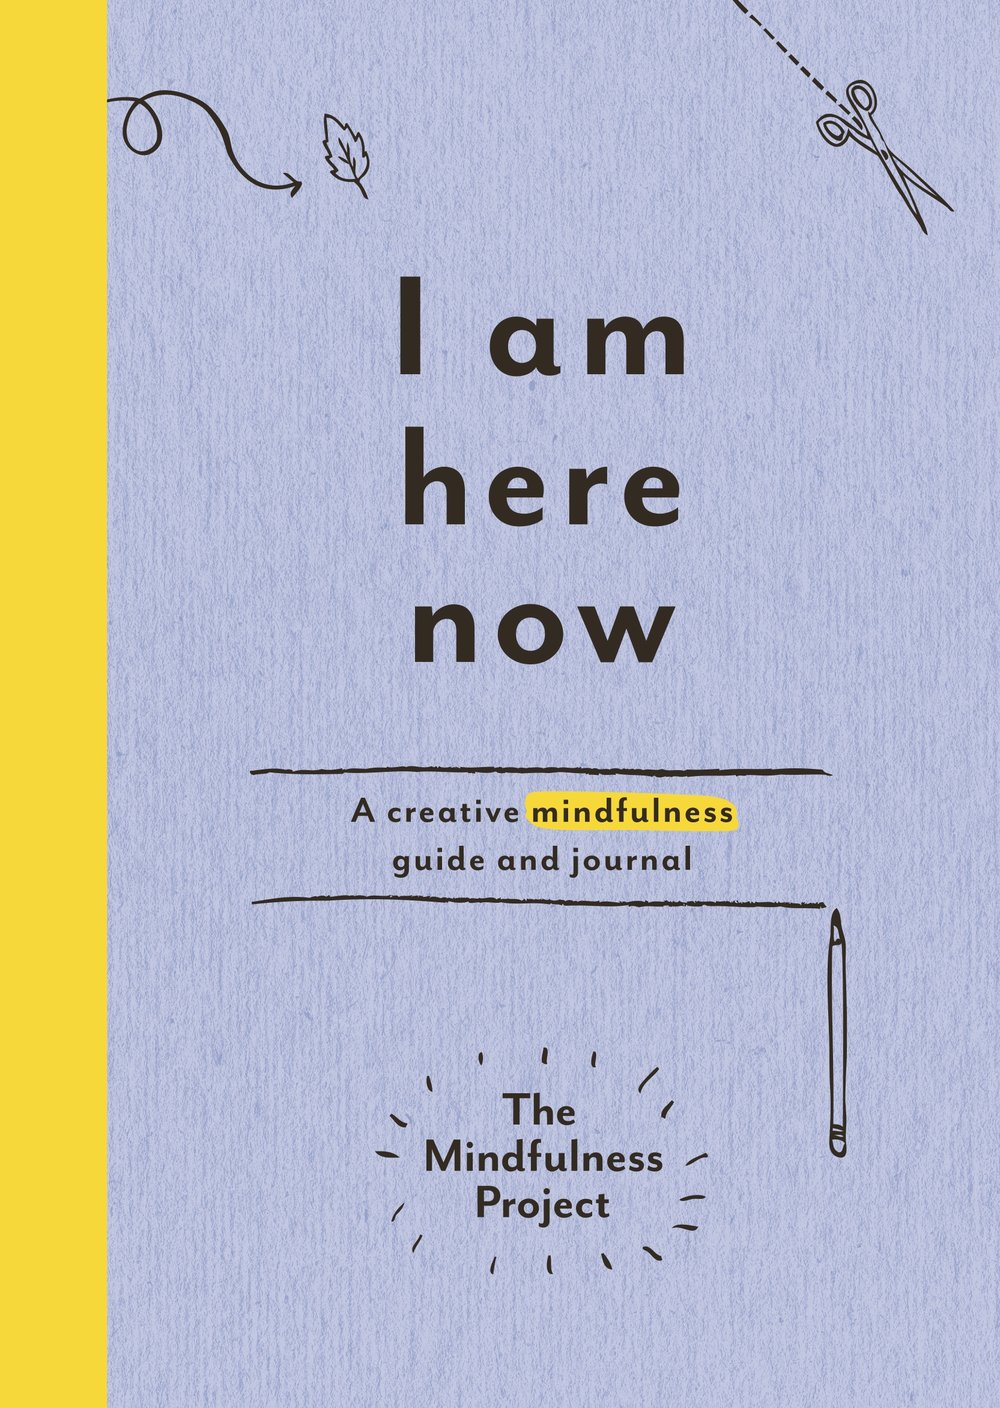 Books on Mindfulness - I Am Here Now